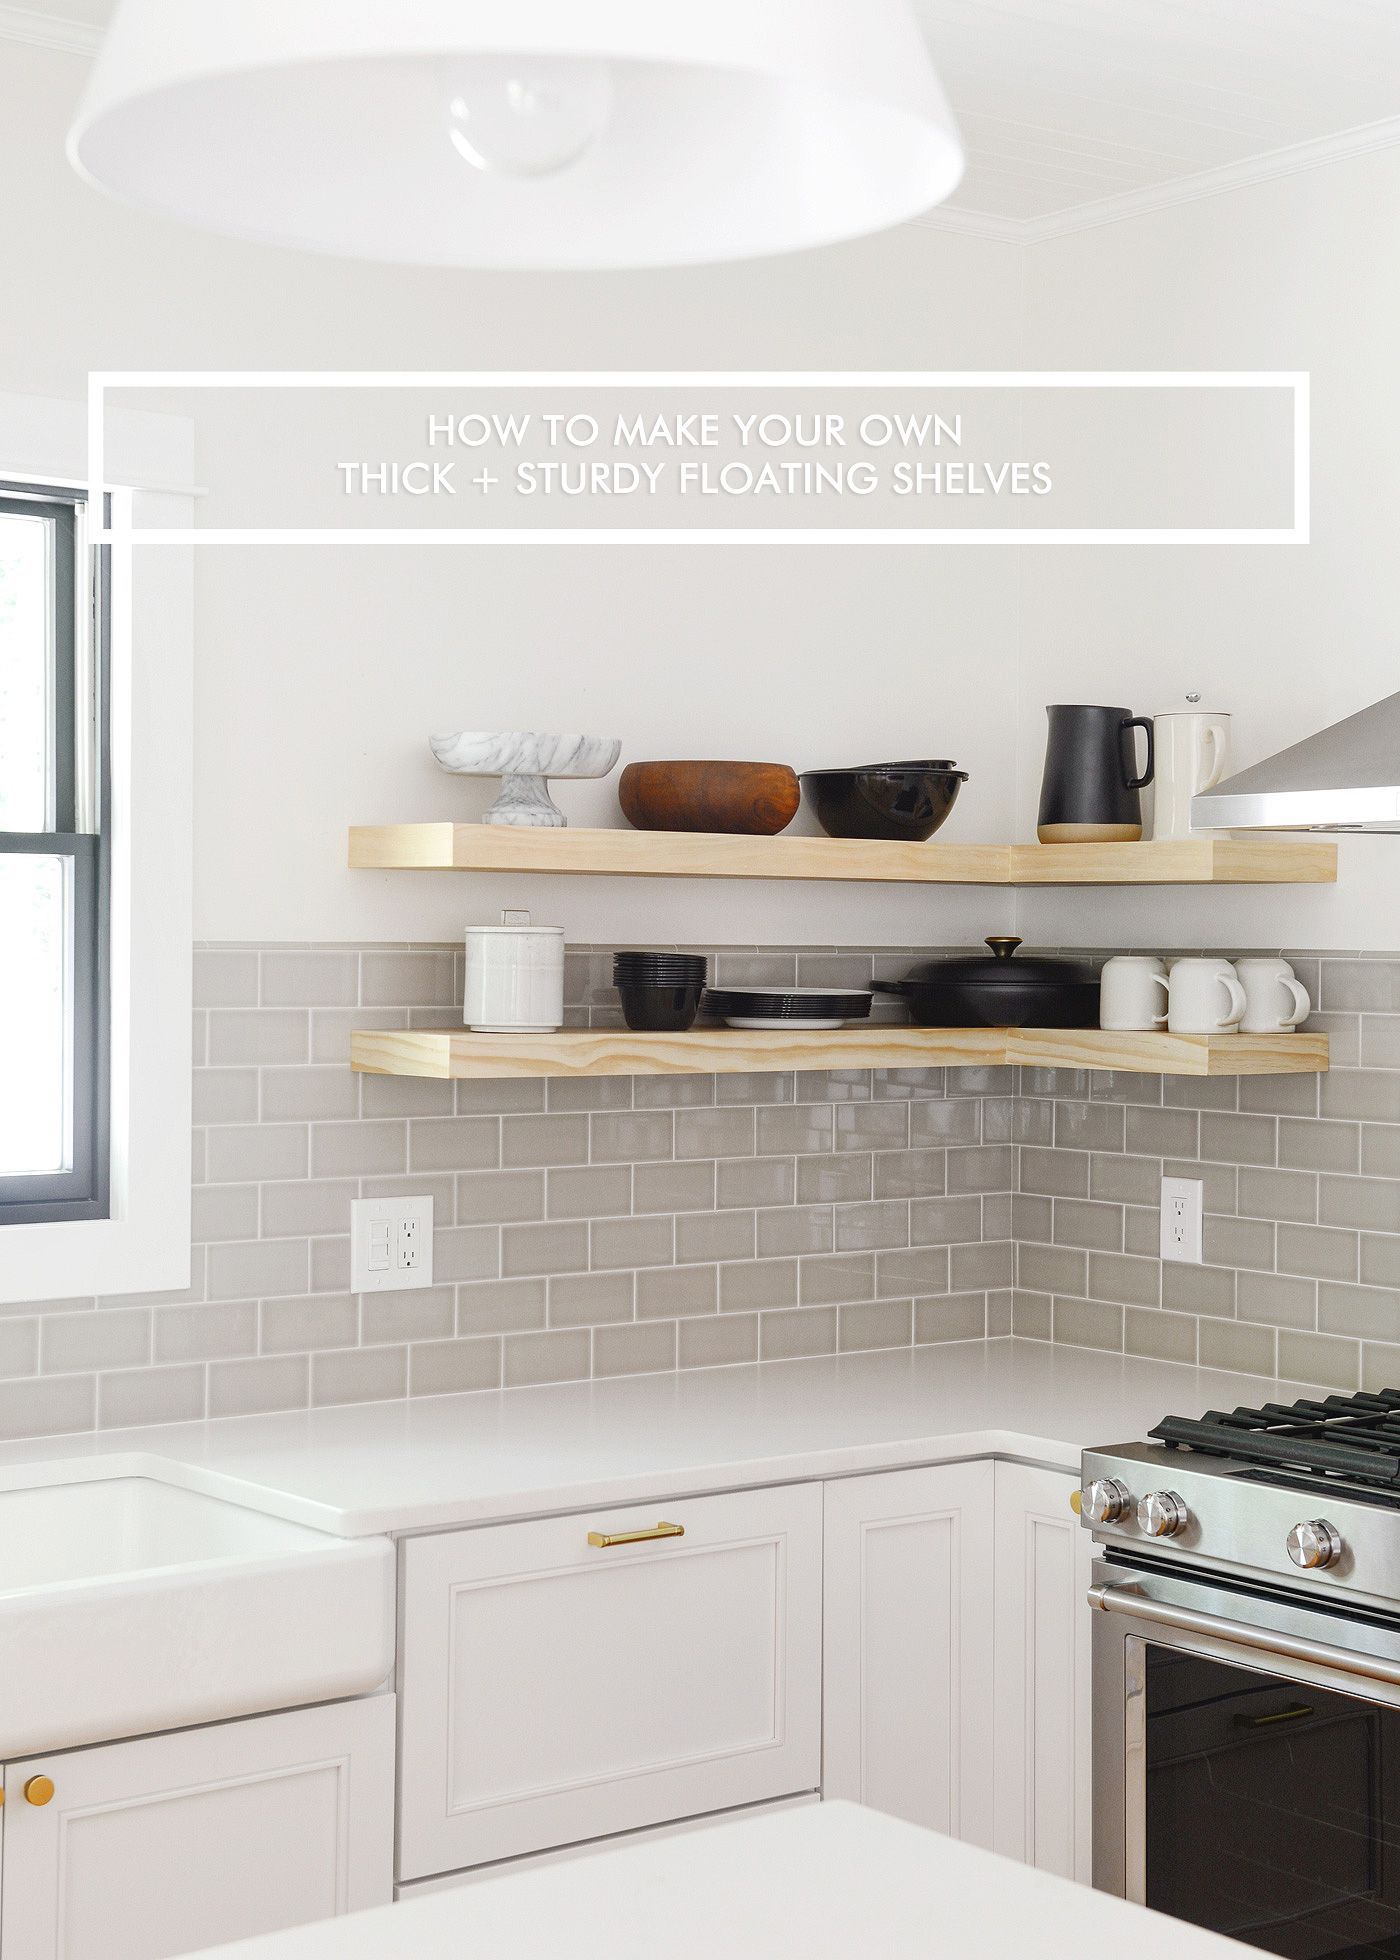 How We Made Thick Floating Shelves A Video Diy Floating Shelves Kitchen Floating Shelves Diy Floating Shelves Kitchen